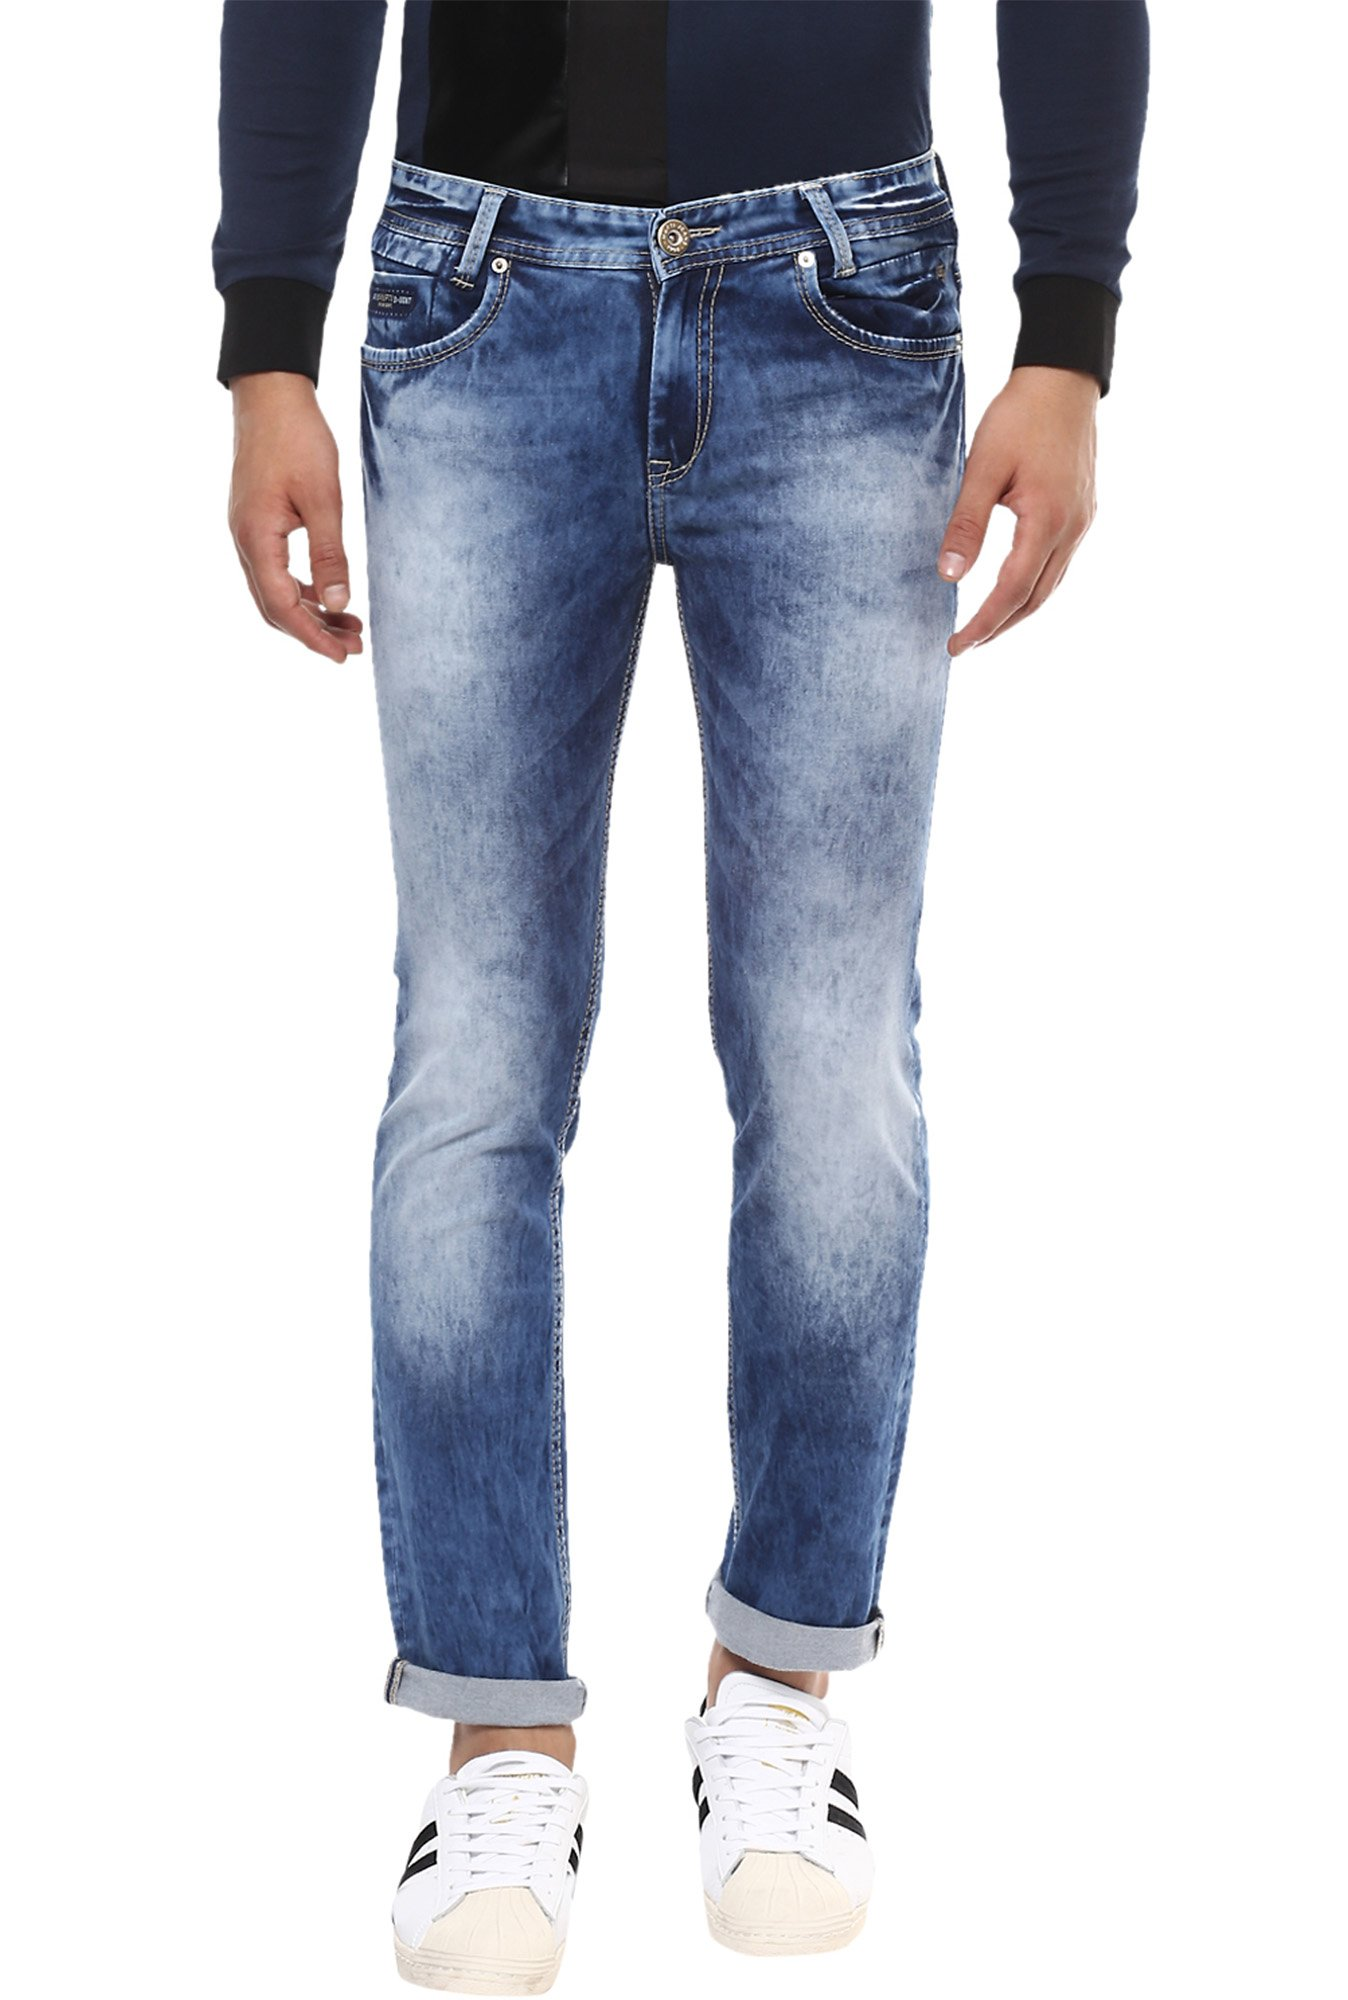 Mufti Blue Mid Rise Heavily Washed Jeans